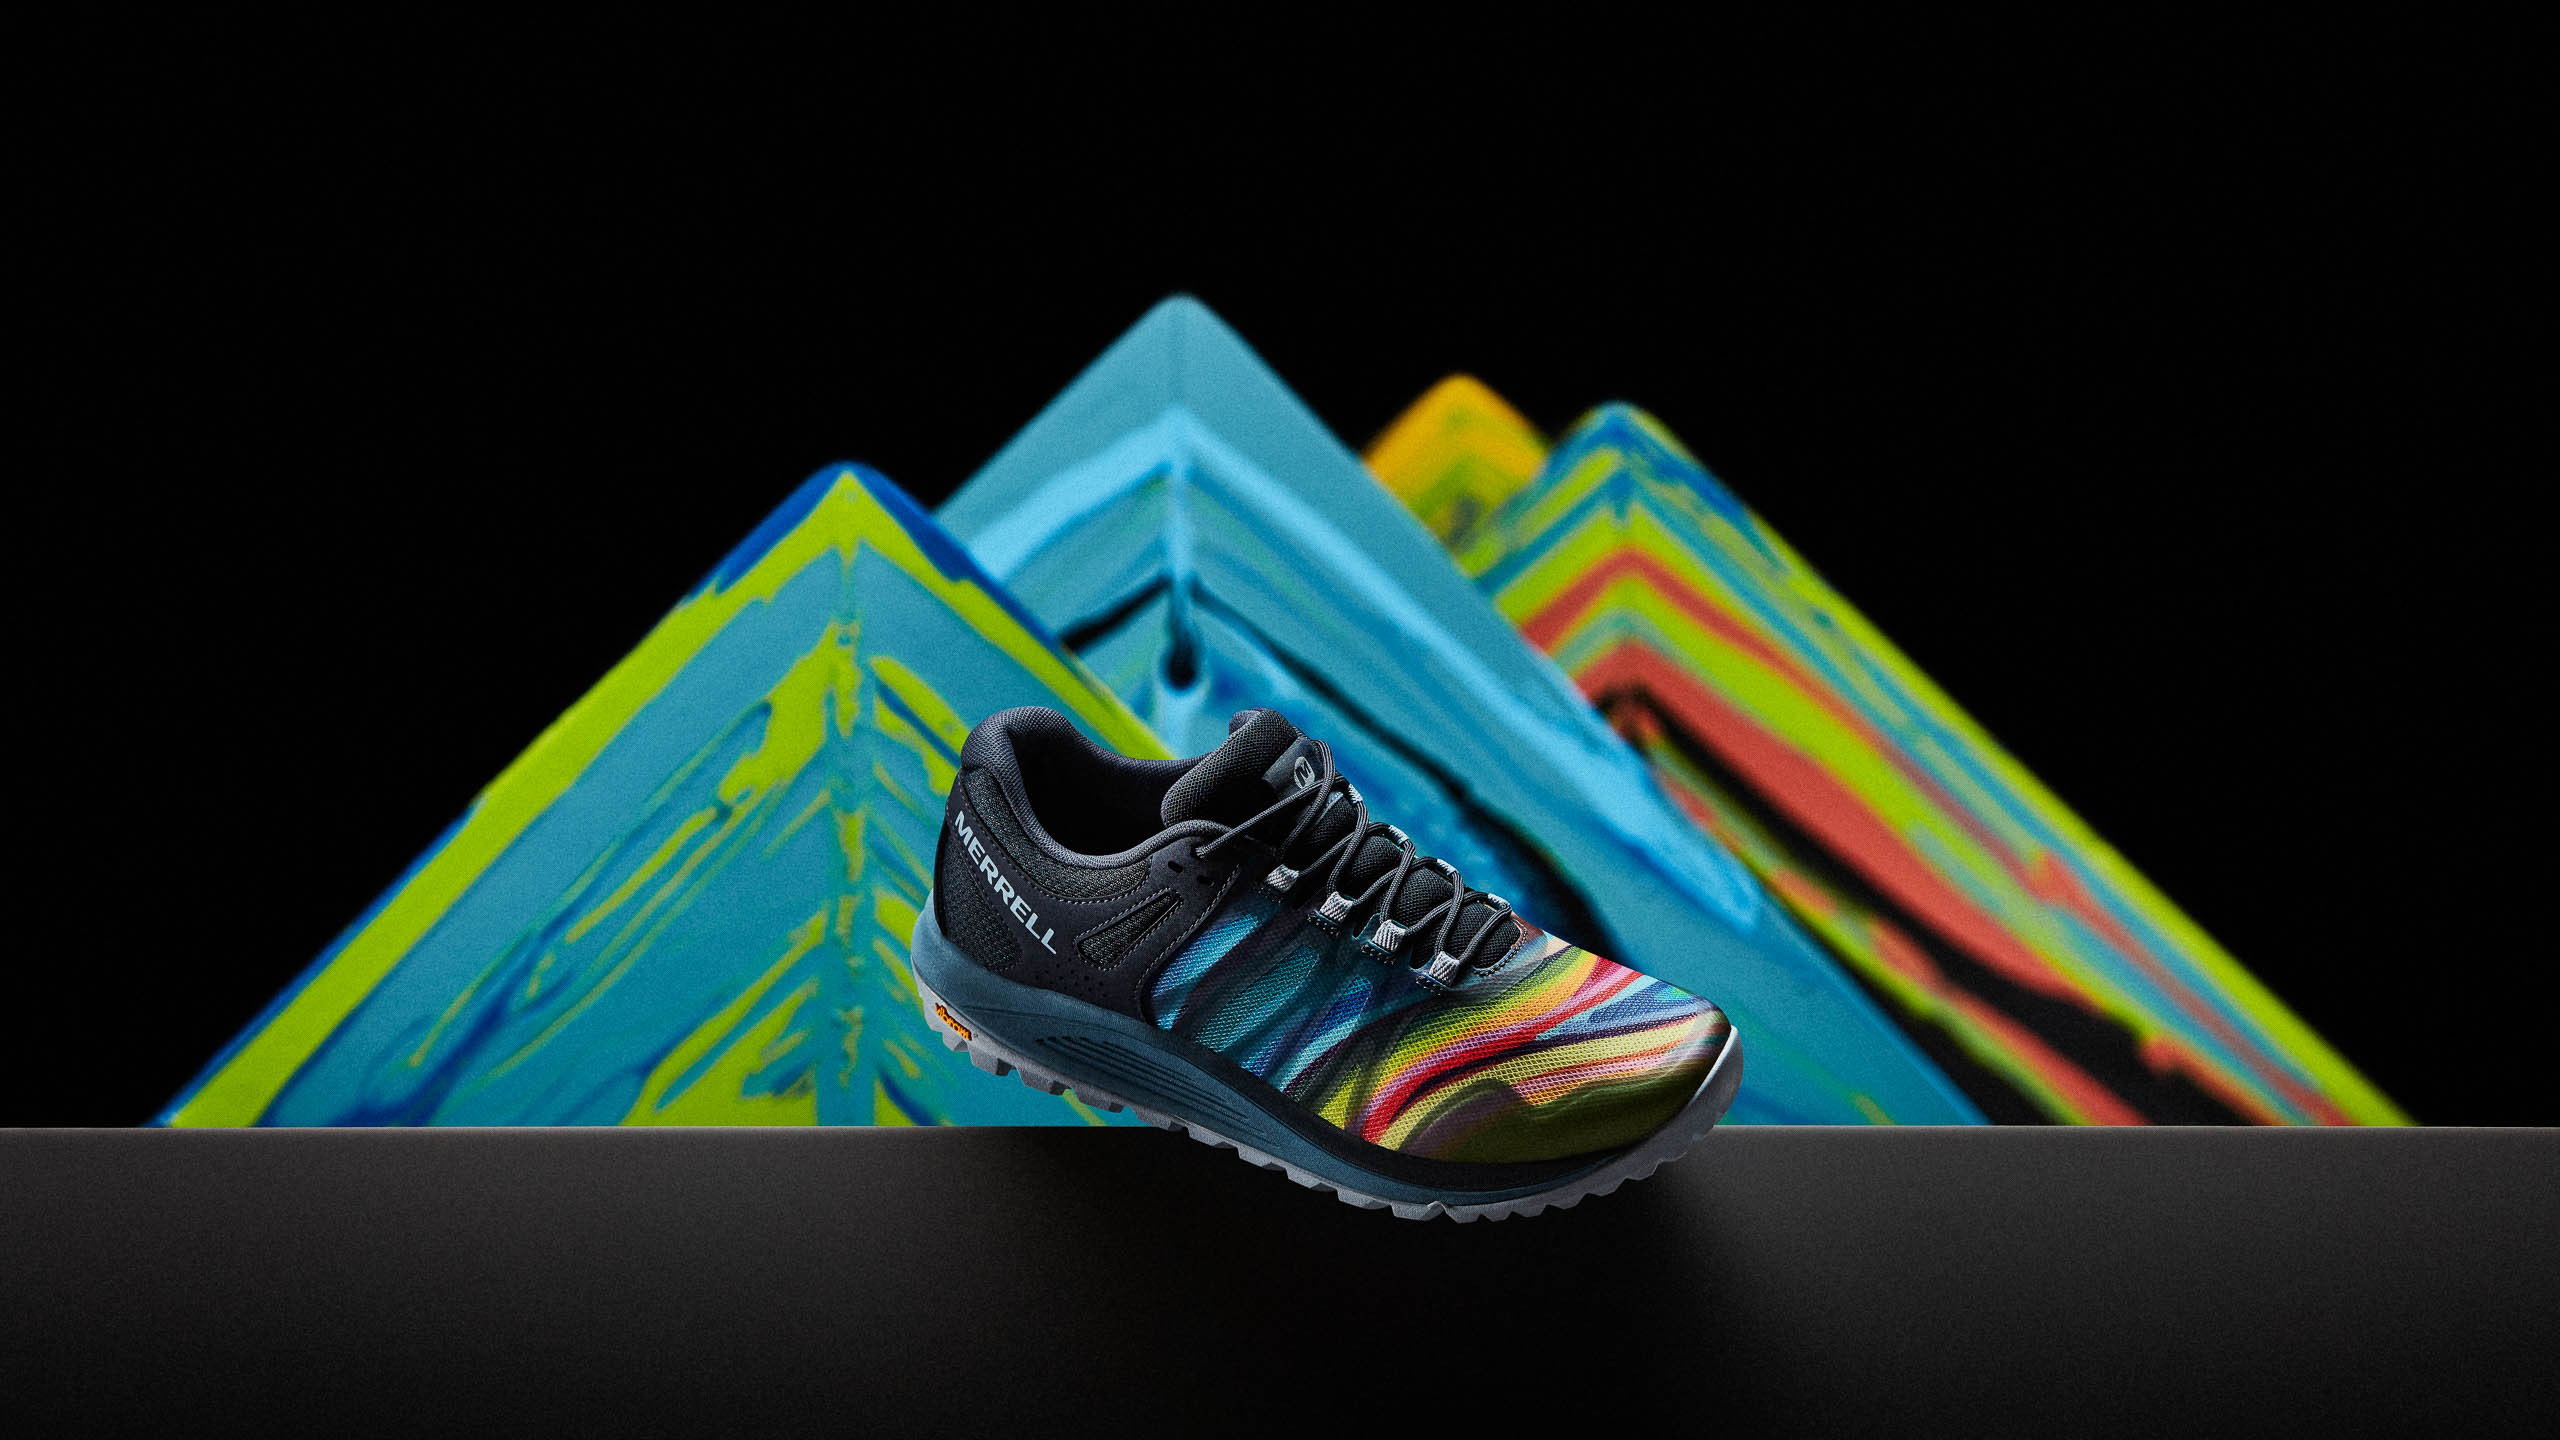 Merrell Nova inspired by the Painted Mountains